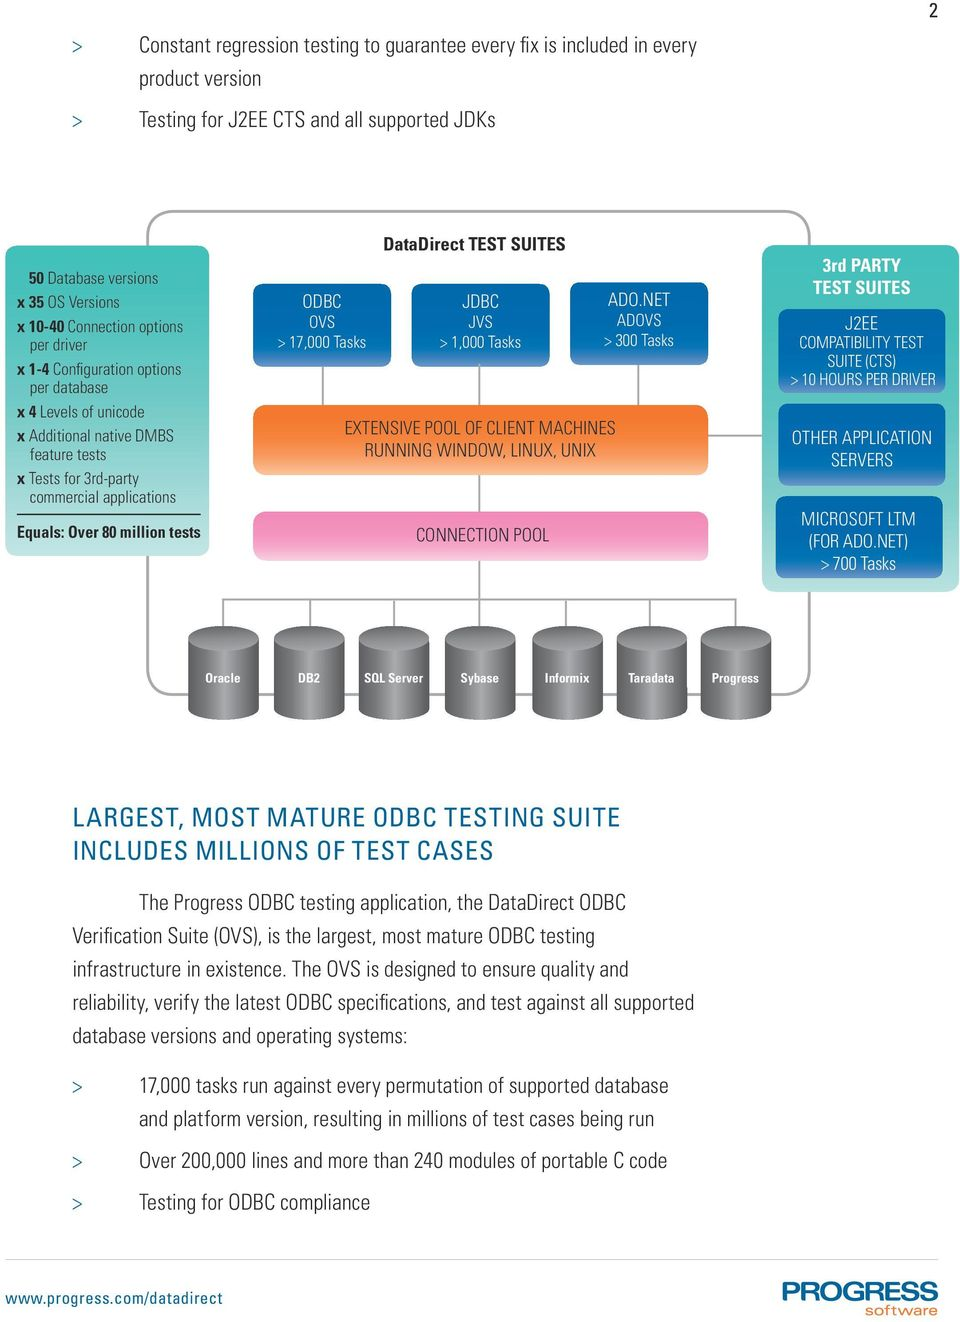 million tests ODBC OVS > 17,000 Tasks DataDirect TEST SUITES JDBC JVS > 1,000 Tasks EXTENSIVE POOL OF CLIENT MACHINES RUNNING WINDOW, LINUX, UNIX CONNECTION POOL ADO.